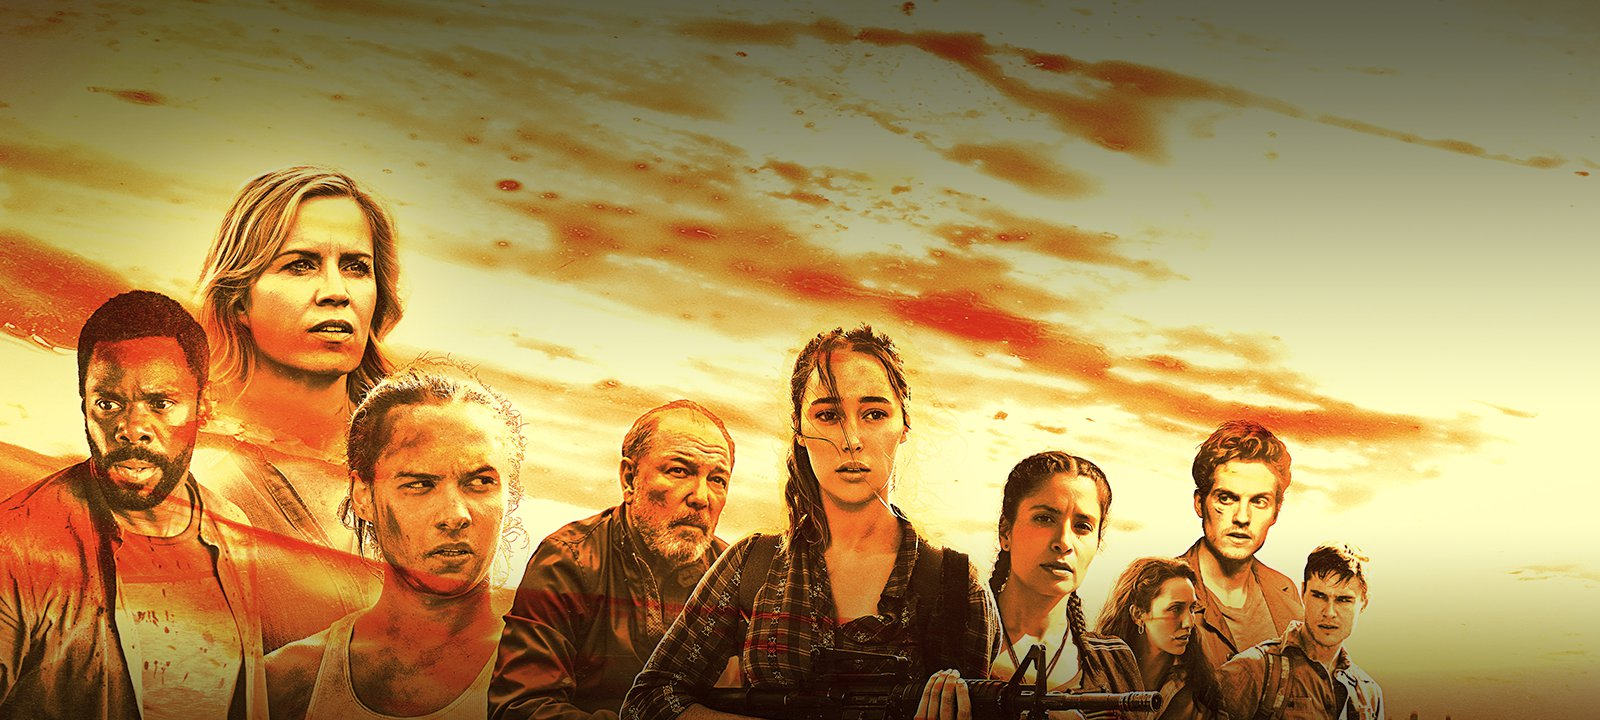 fear-the-walking-dead-season-3-cci-key-art-nick-dillane-madison-dickens-1600x720